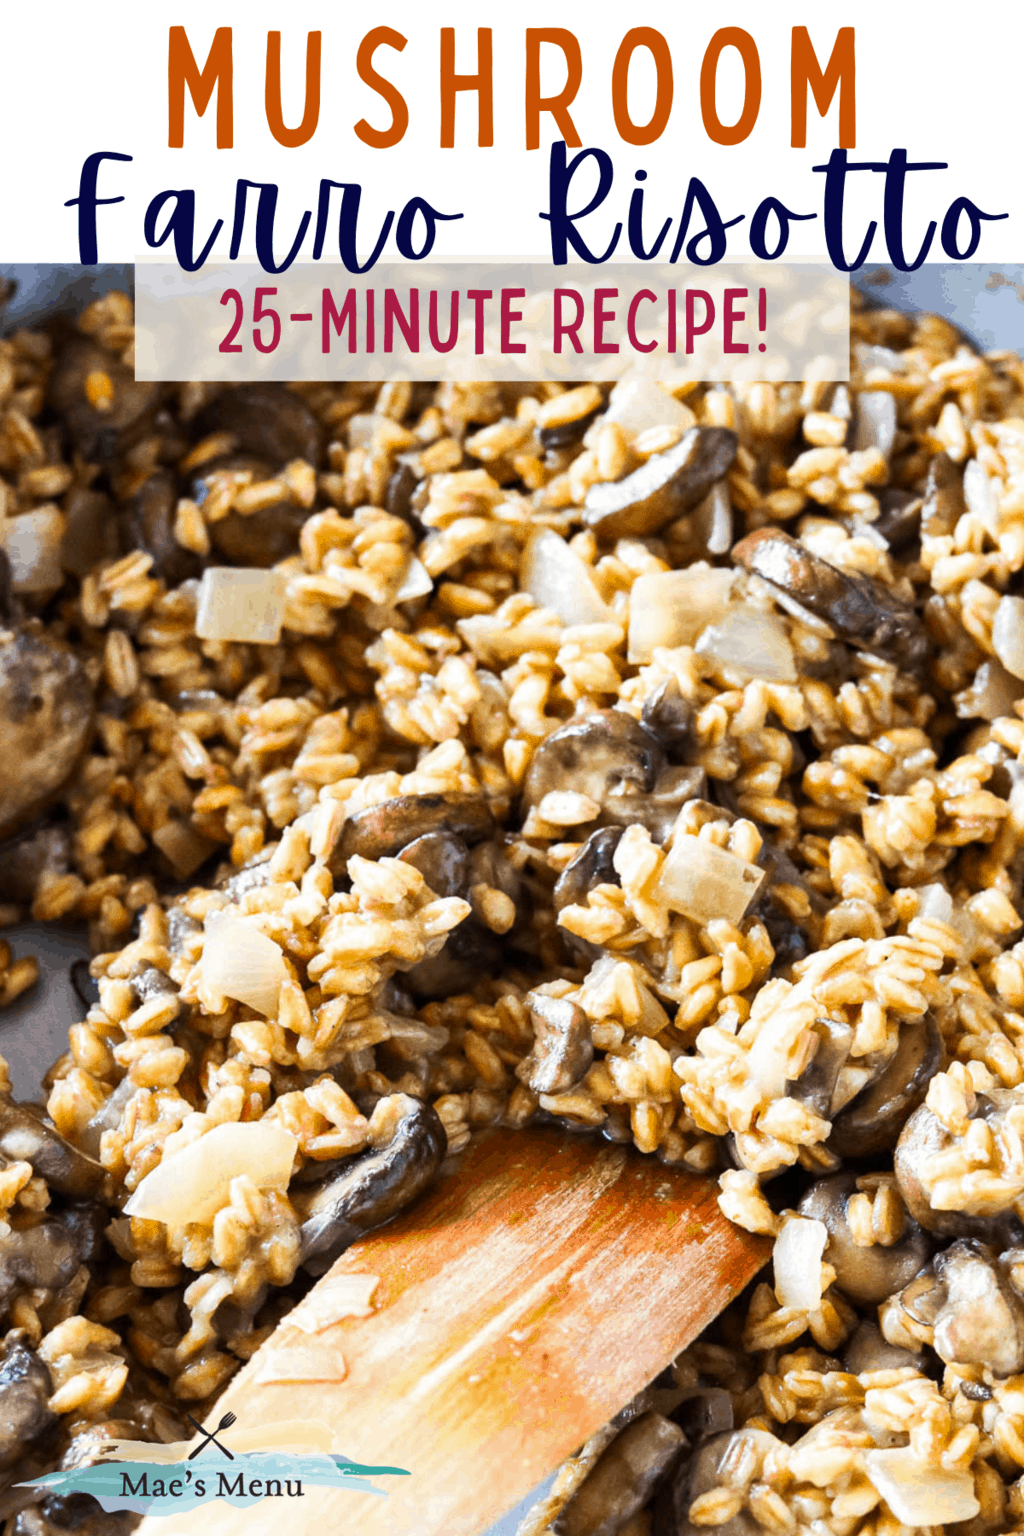 A pinterest pin for mushroom farro risotto with an up-close shot of a pan of the risotto